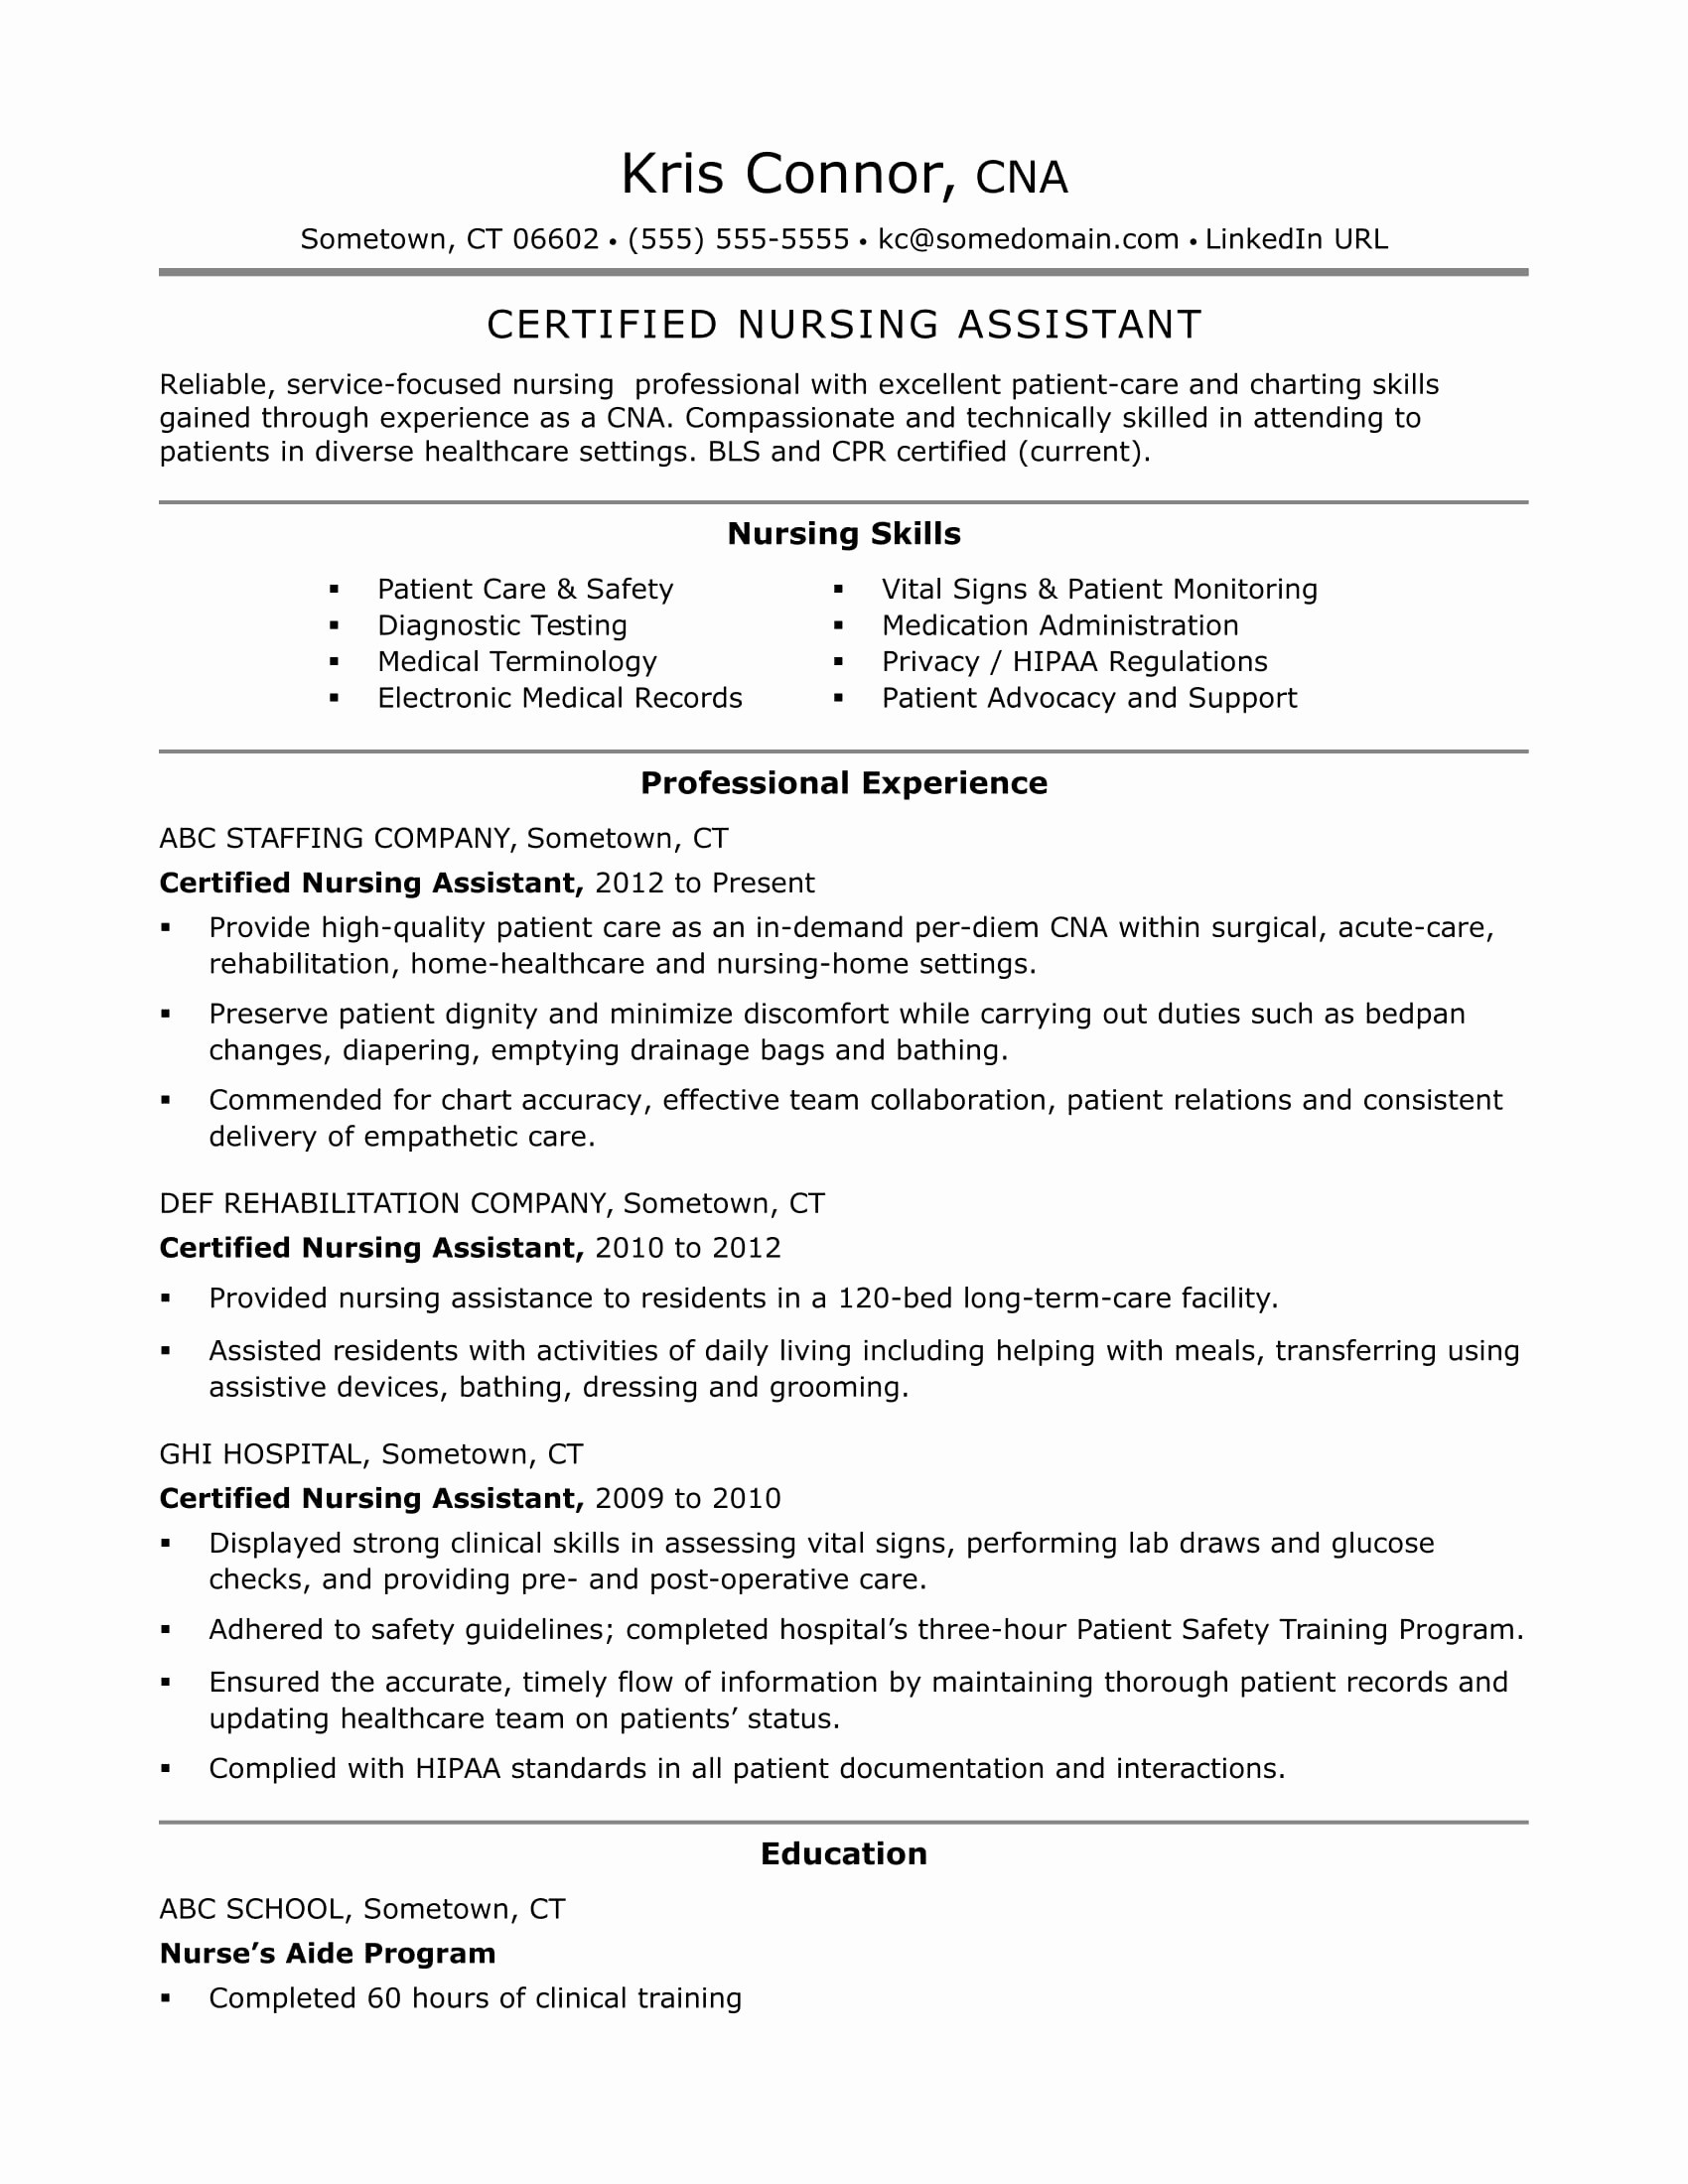 hipaa letter medical collection template example-Business Plan Home Health Care Beautiful Sample Care Plan Unique Nursing Resumes 0d Wallpapers 40 9-q